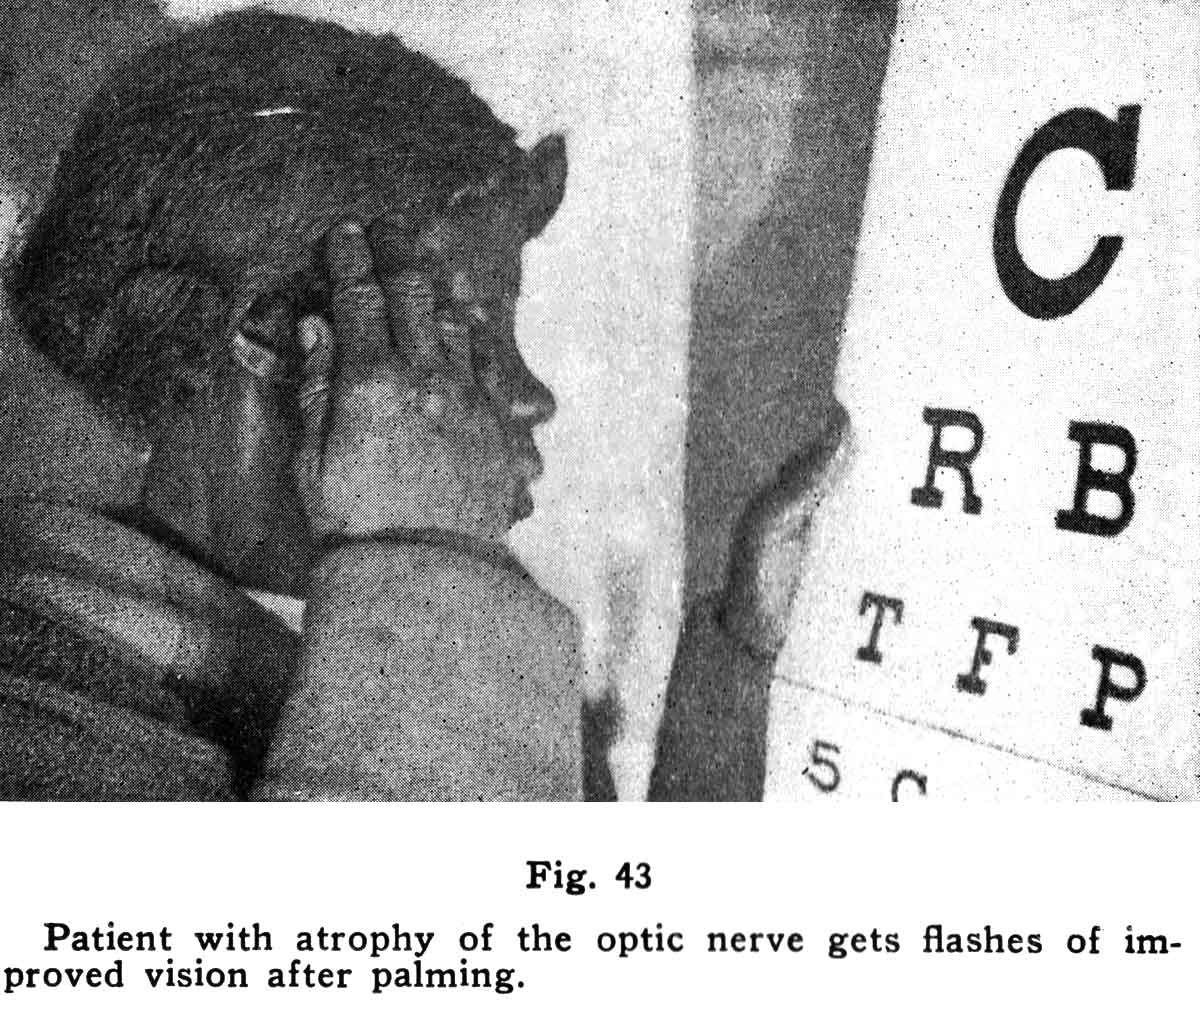 Dr. Bates with African American girl using the Snellen eye chart at the Harlem Clinic in New York